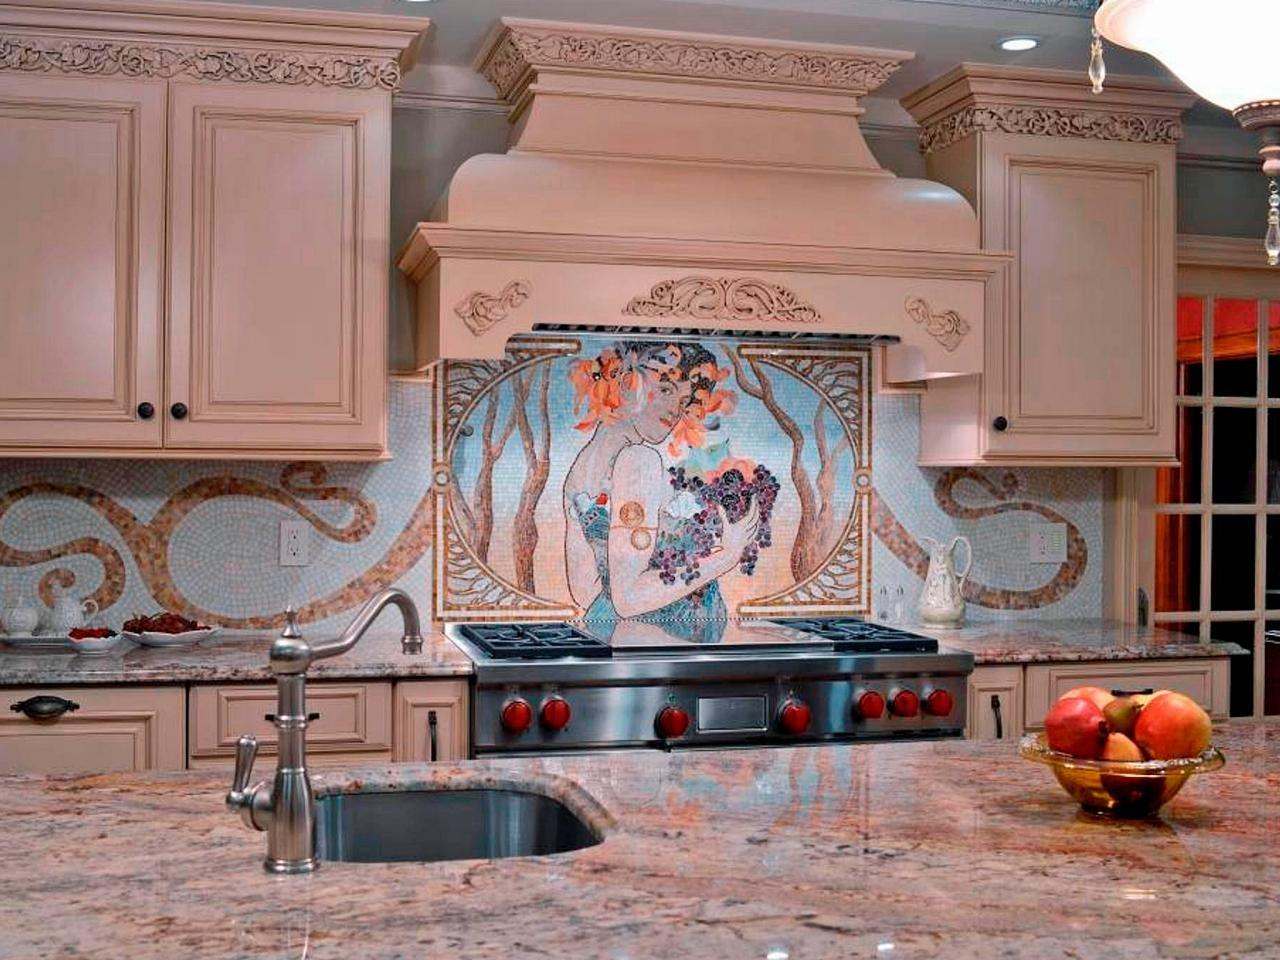 Trendiest Kitchen Backsplash Materials Ideas